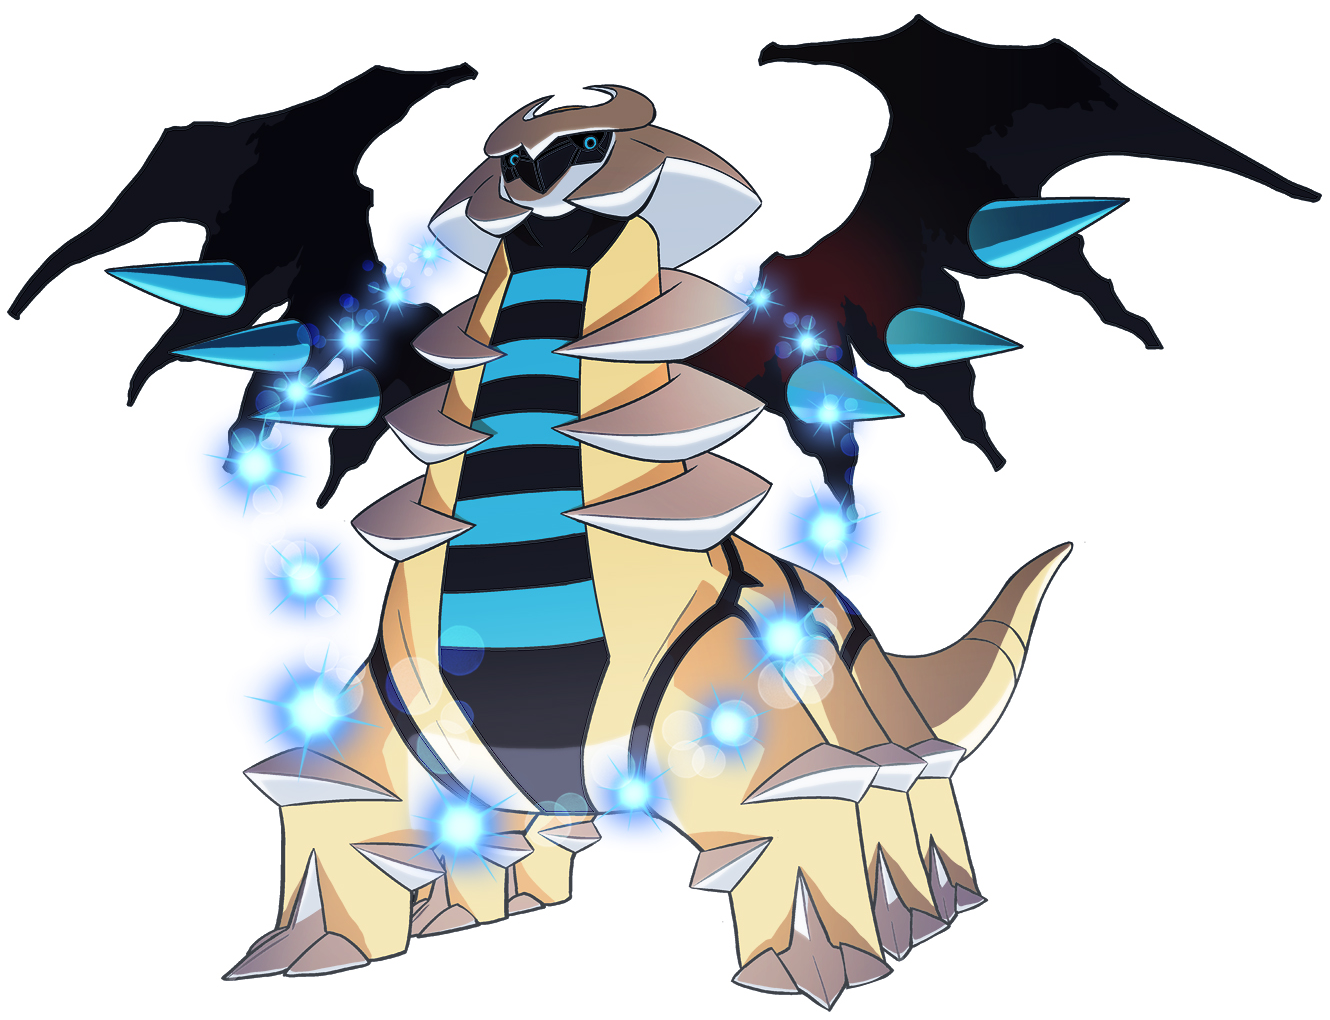 487Shiny Giratina Shiny Giratina Altered Form